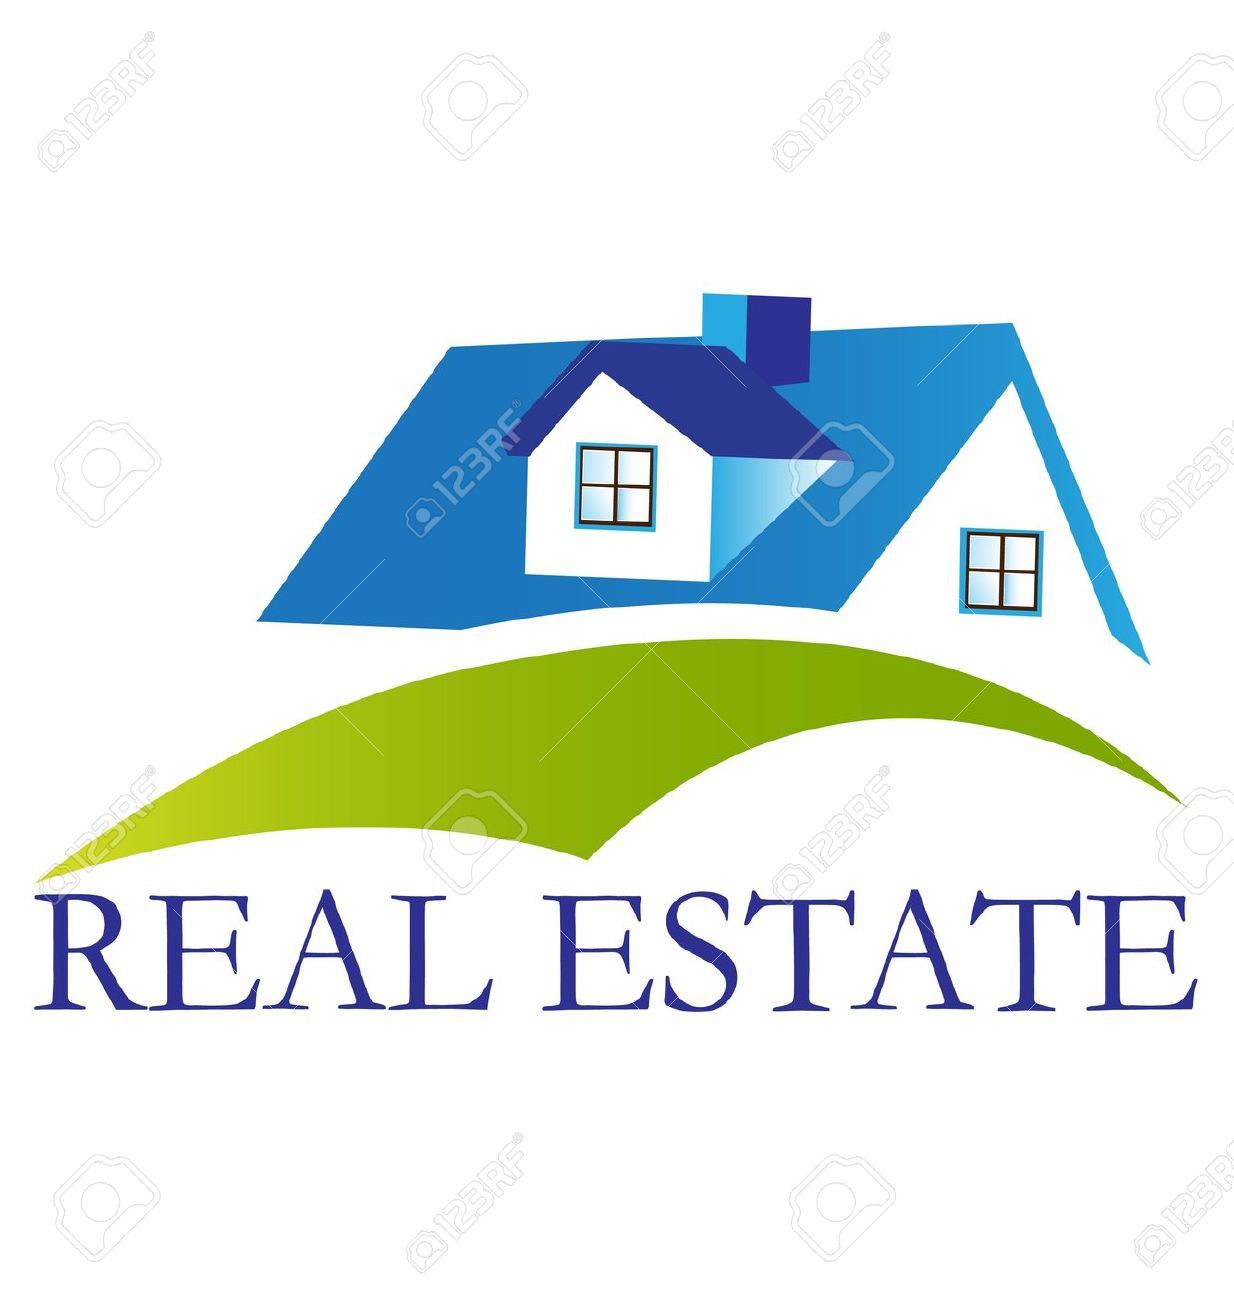 Free real estate logo clipart png transparent download Free real estate logo clipart - ClipartFest png transparent download